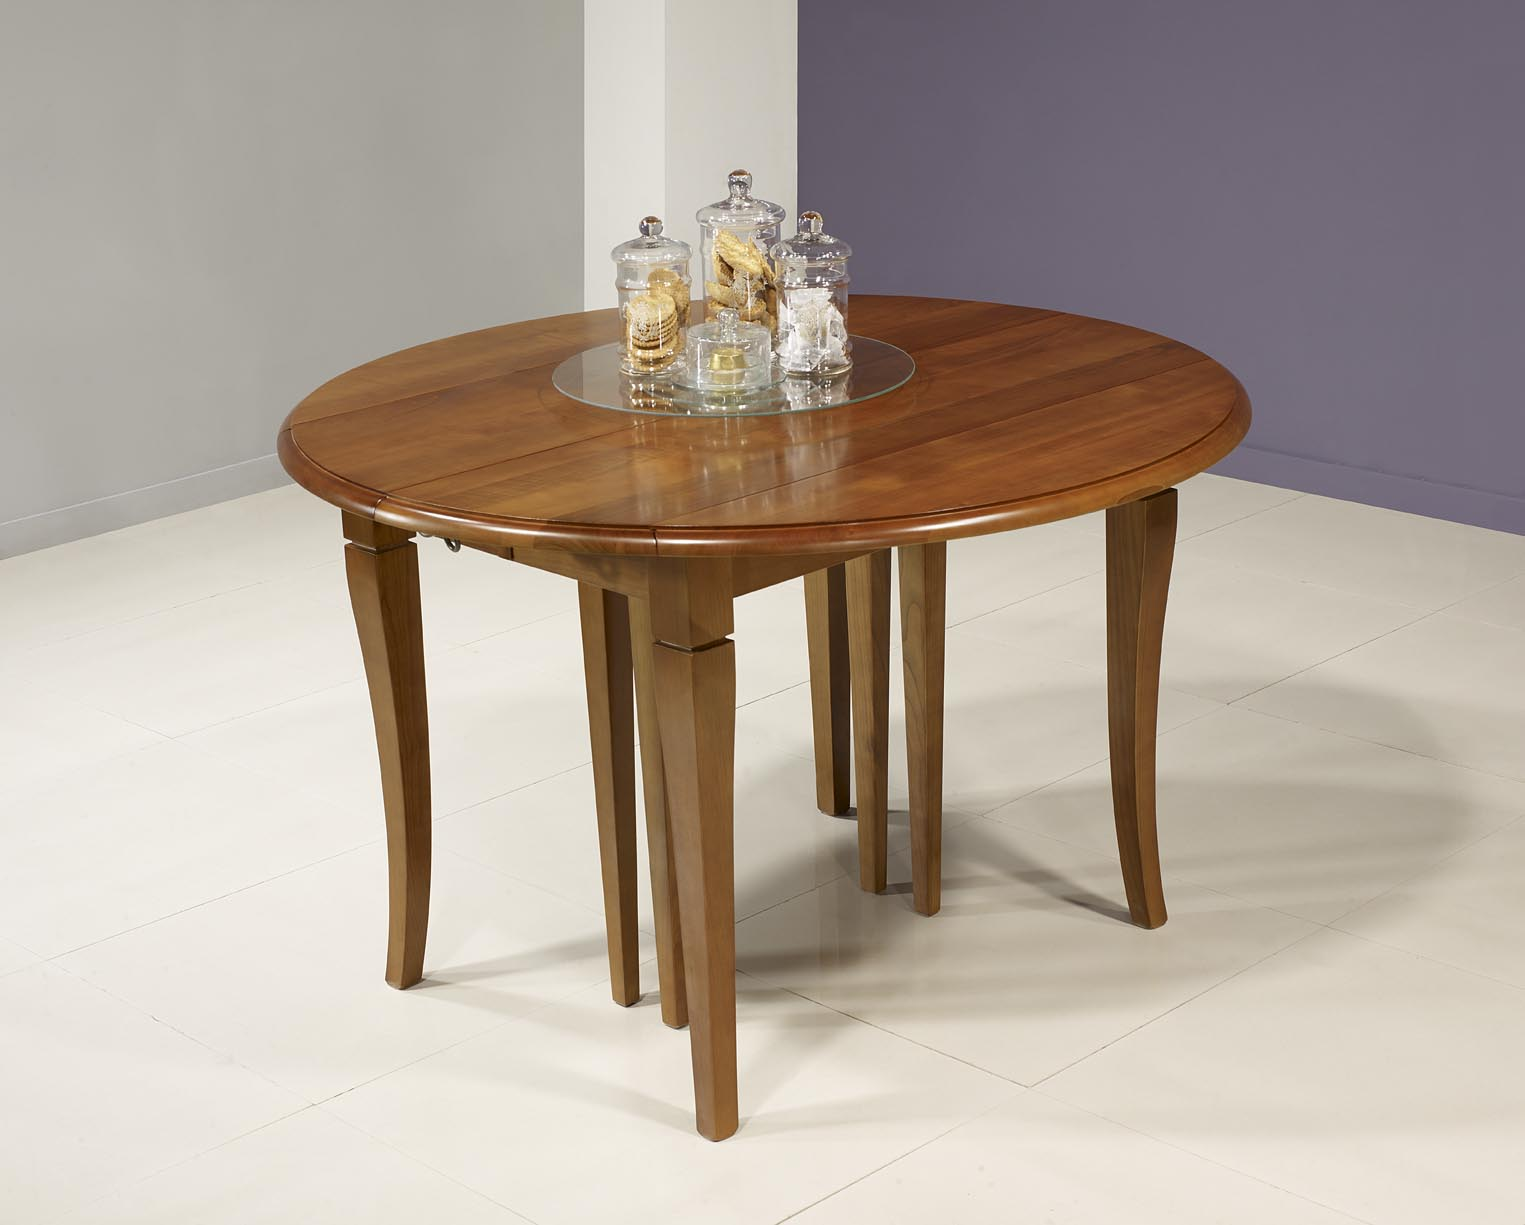 Table ronde volets diametre 110 en merisier massif de - Table ronde 110 cm ...